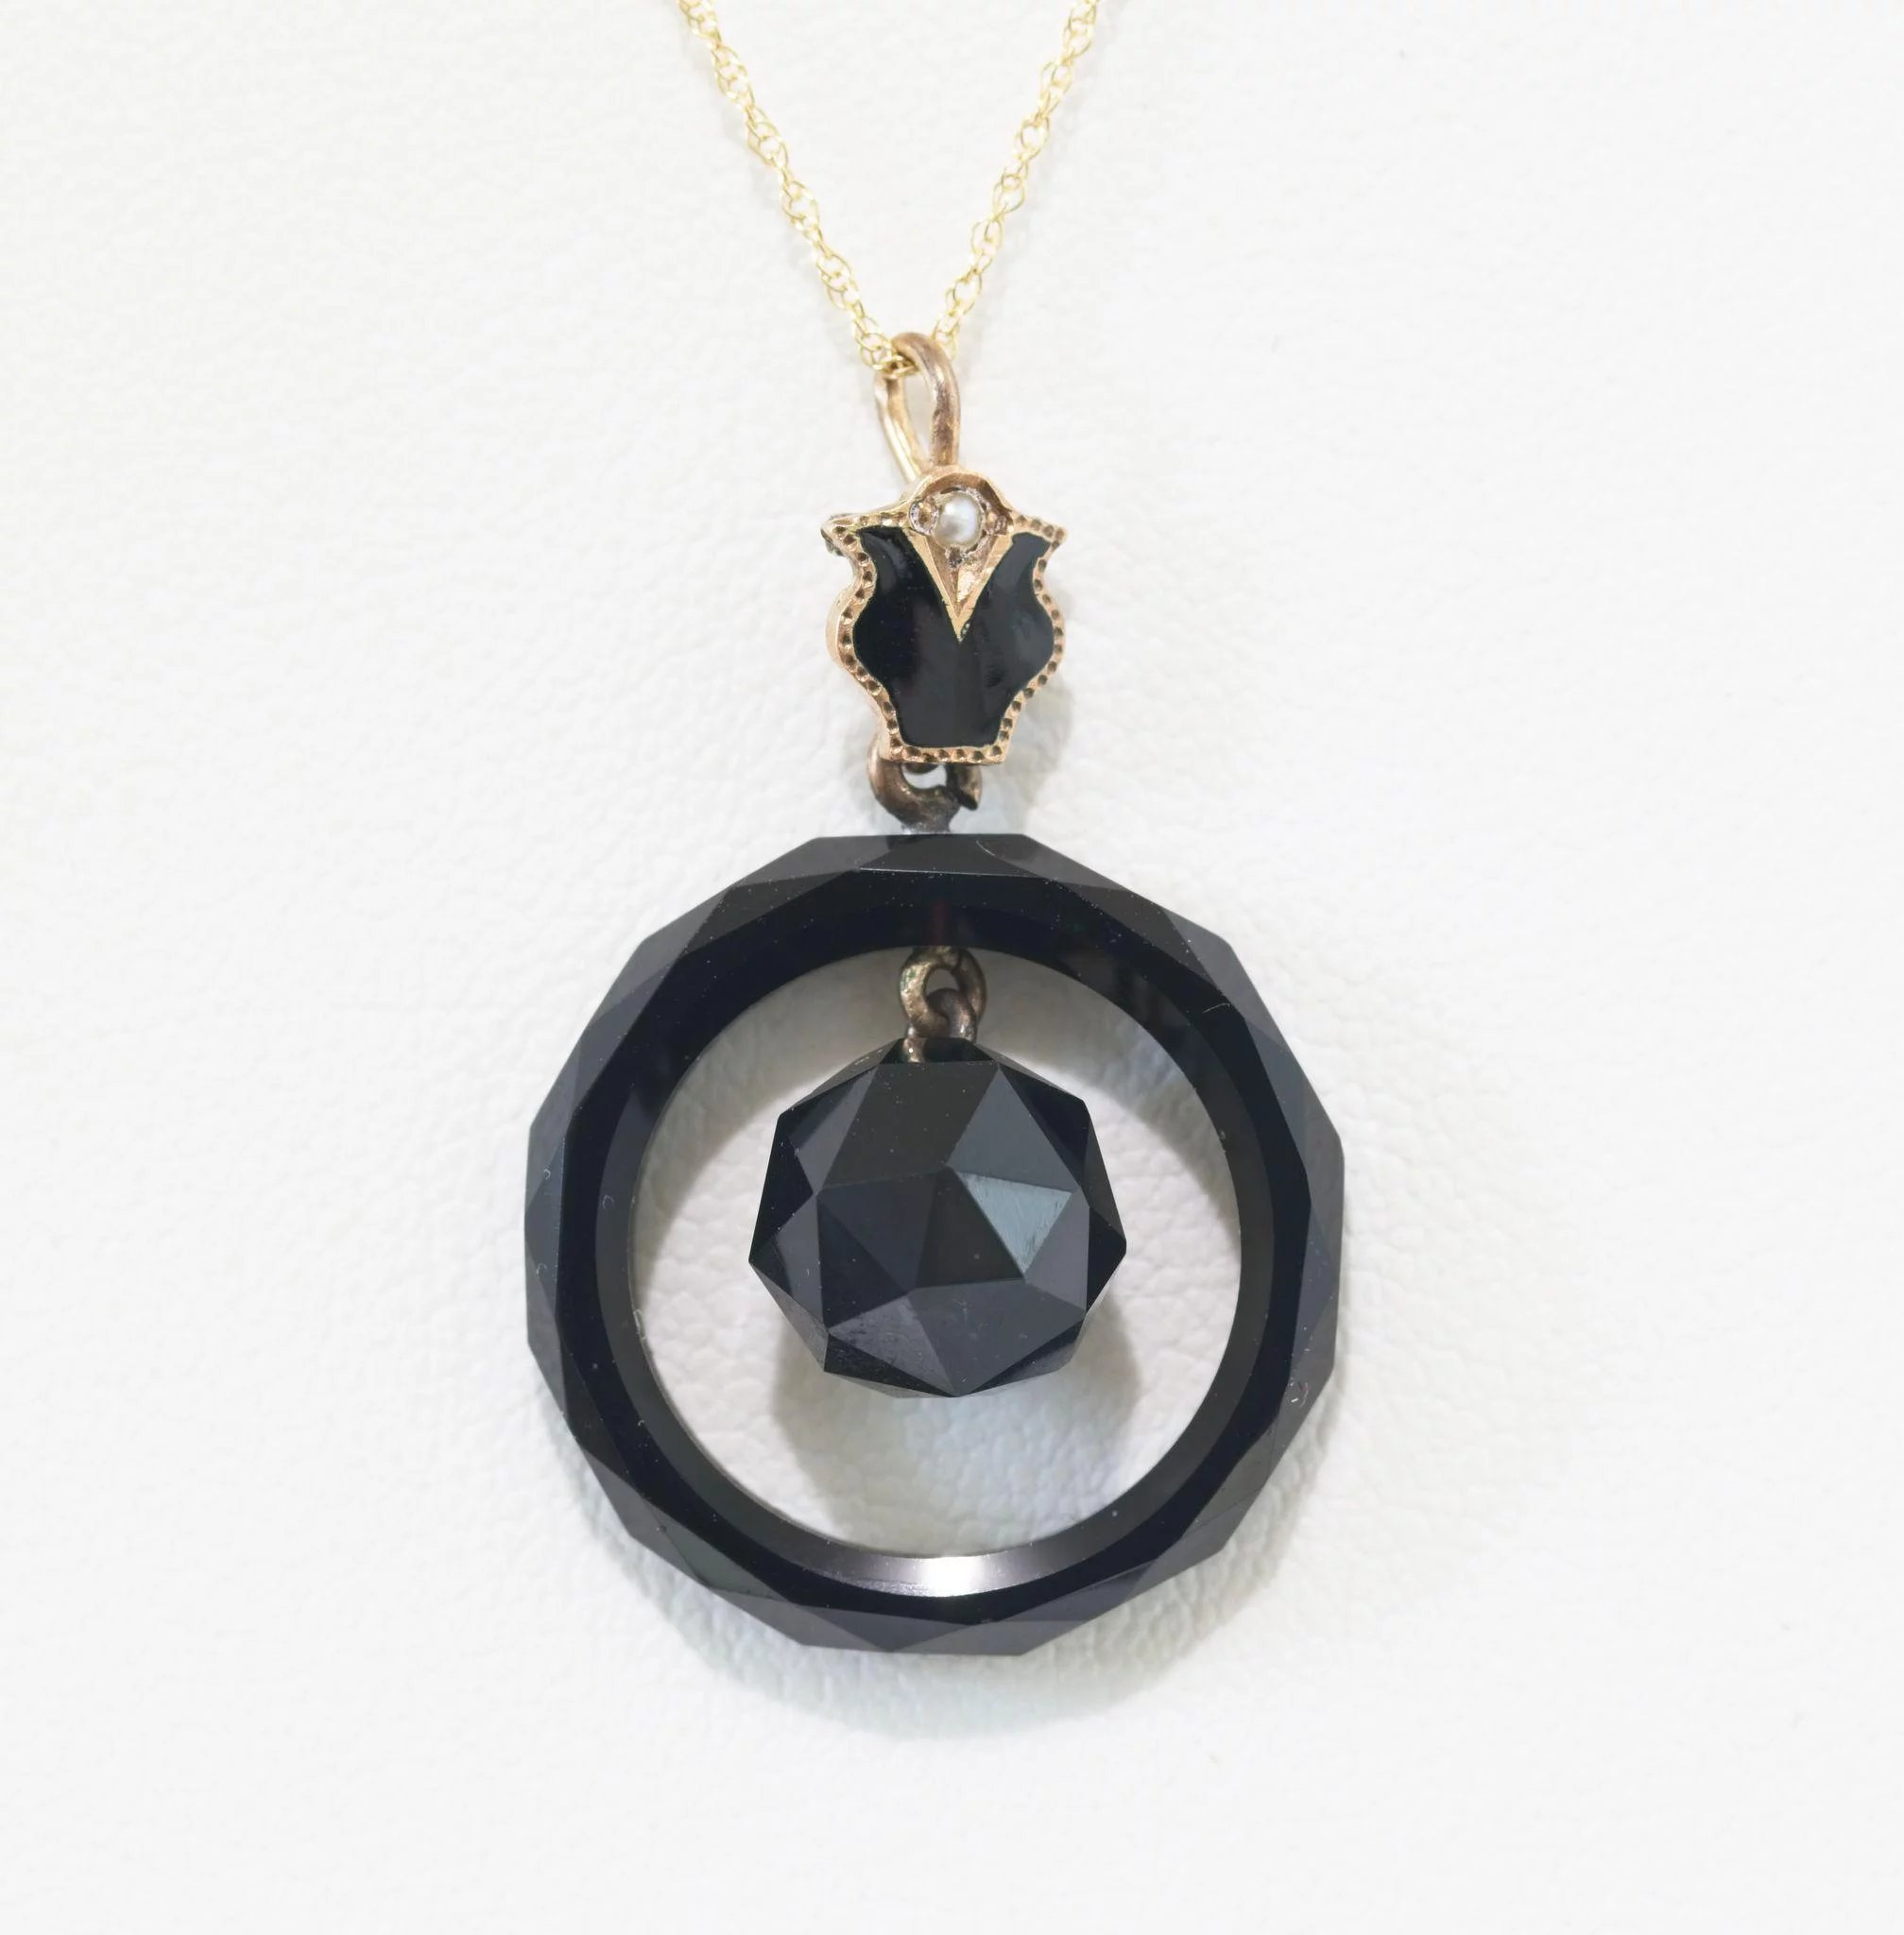 handmade on onyx teardrop thailand and product necklace over shipping pendant watches stone jewelry overstock jade free orders